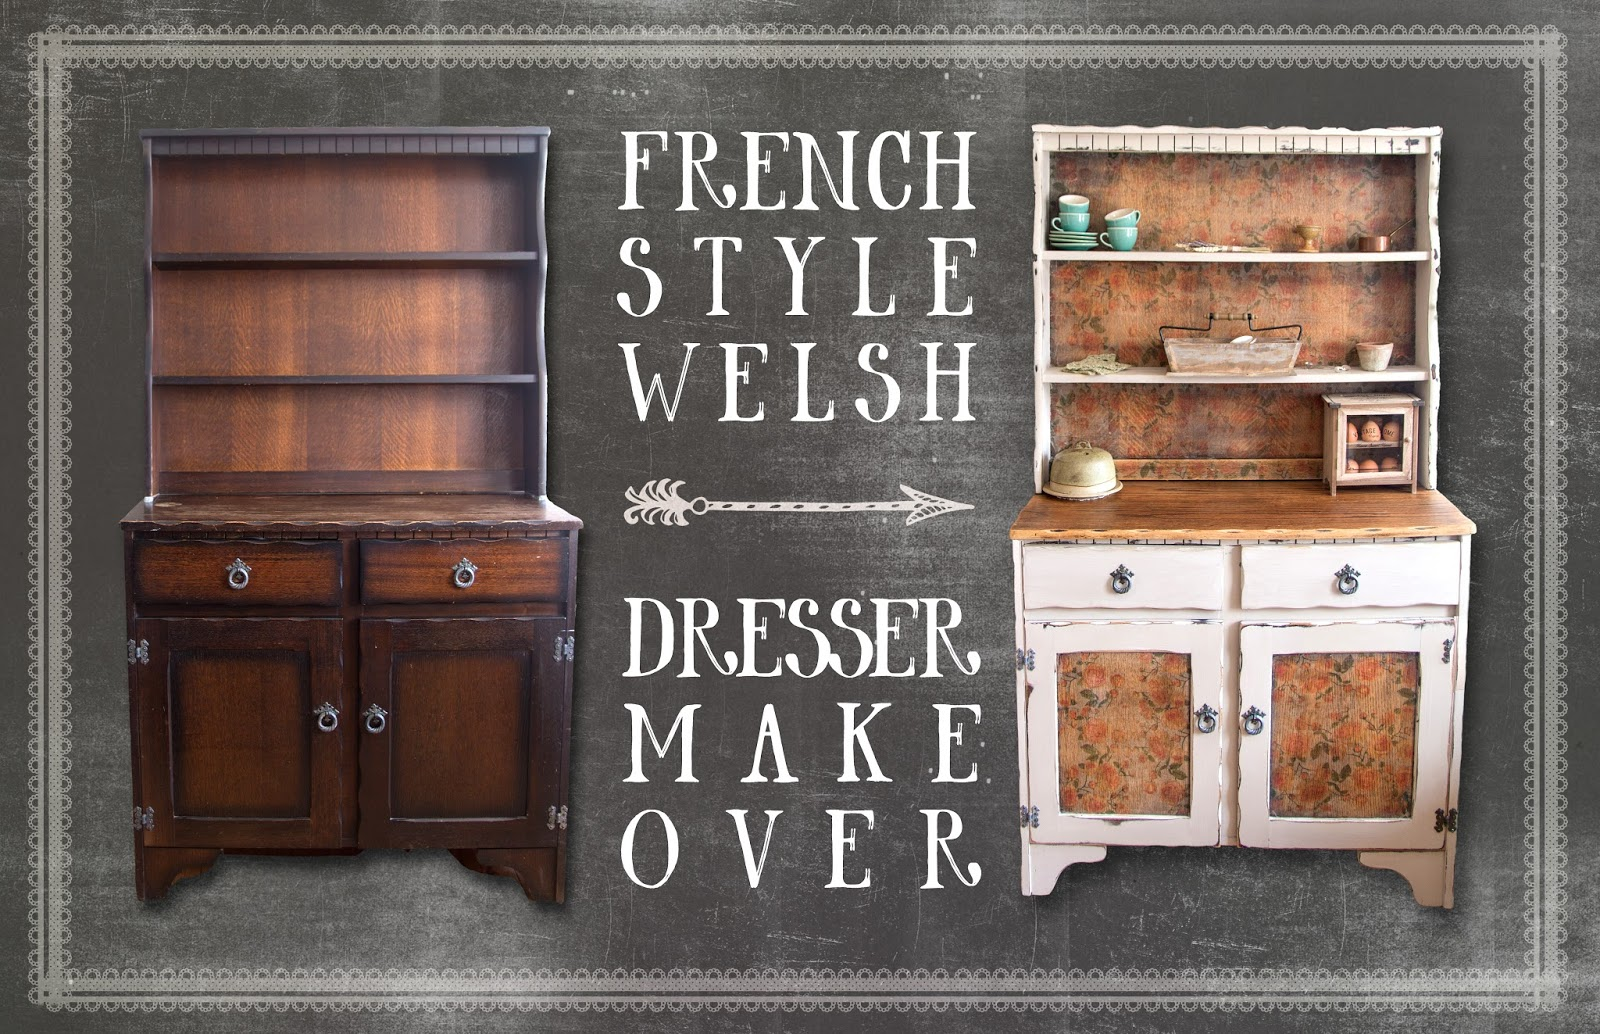 French Style Welsh Dresser Makeover